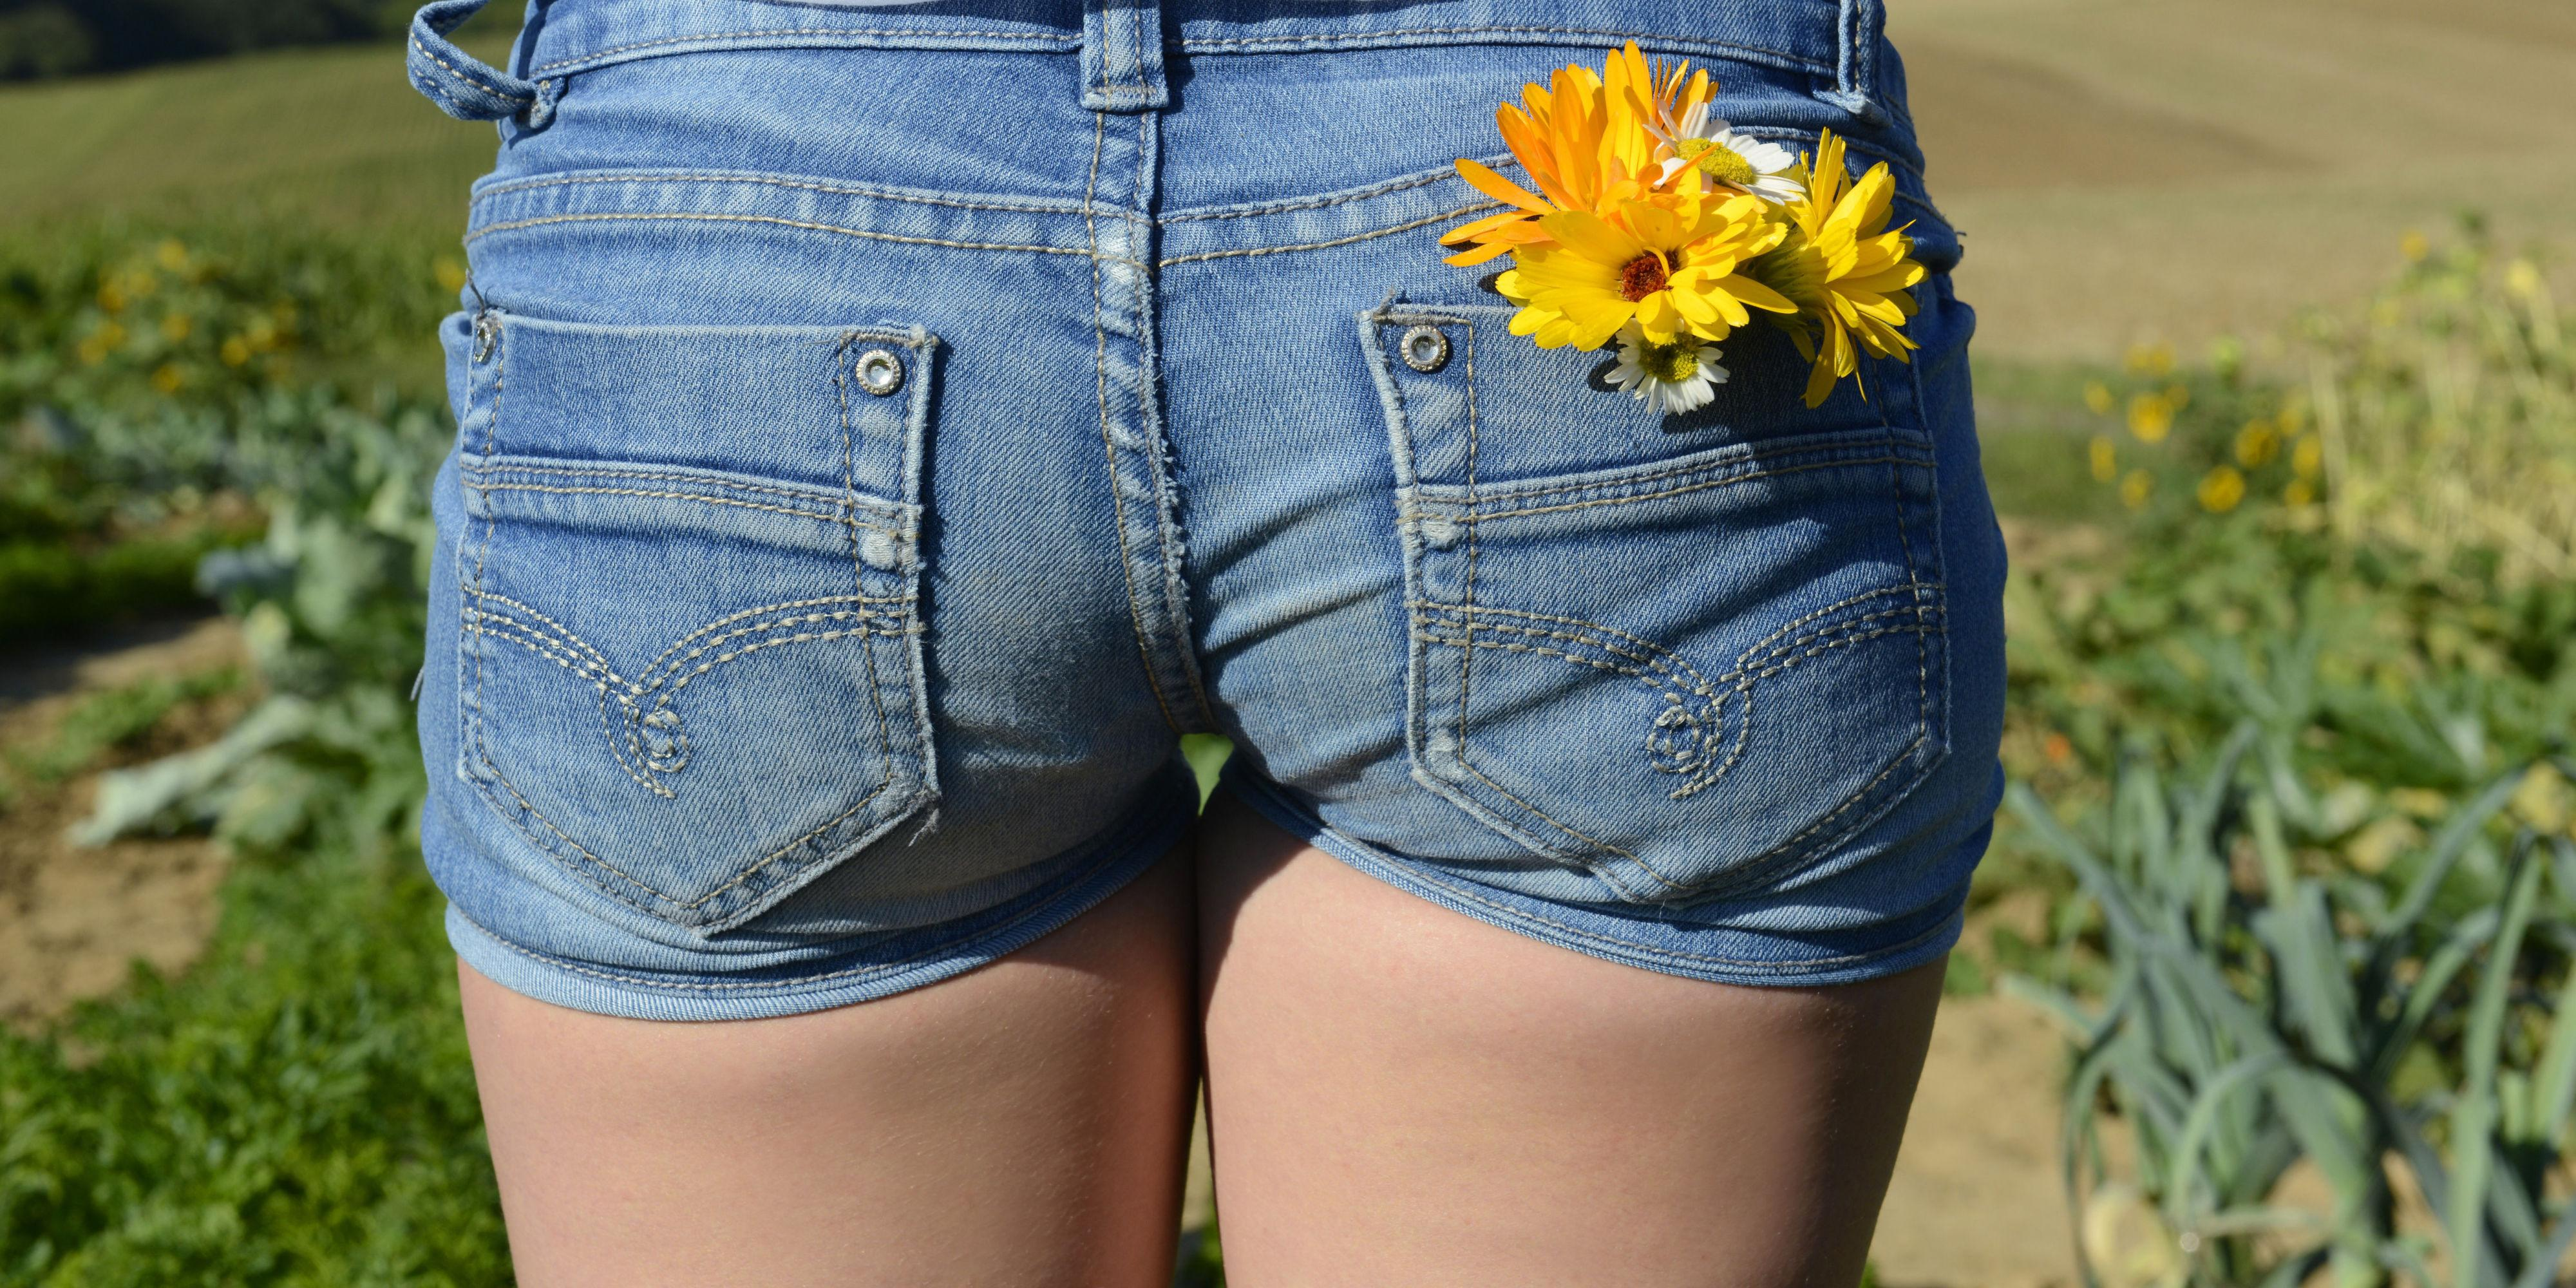 6 Icky Underwear Mistakes You're Probably Making